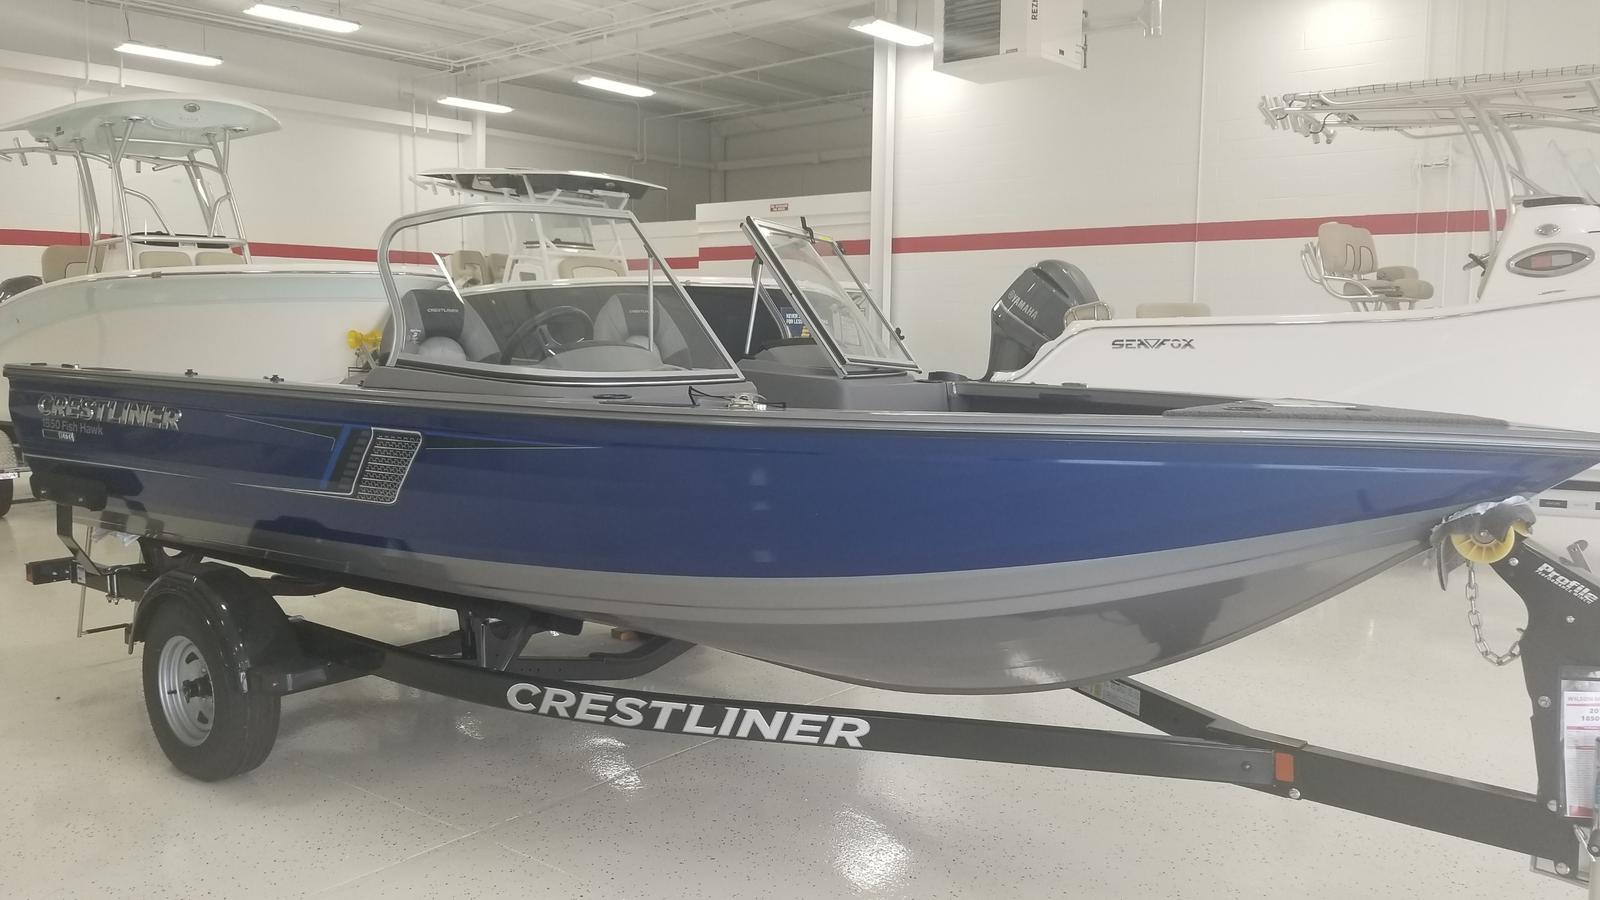 Crestliner 1850 Raptor Walk-through